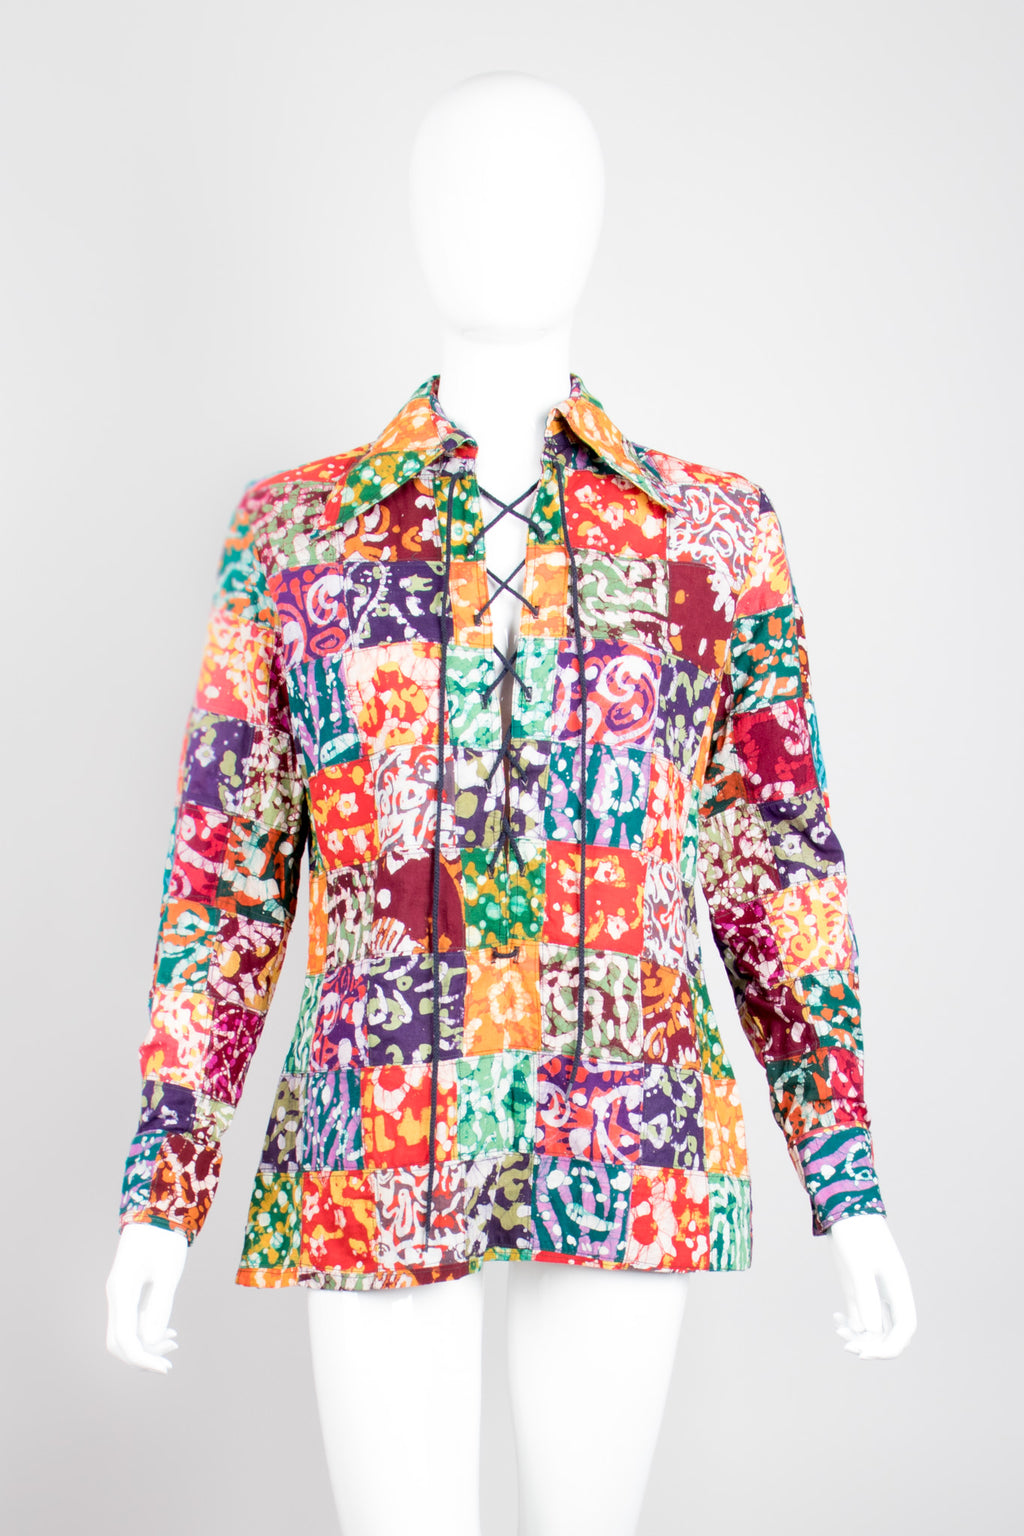 Joseph Magnin Vintage Lace Up Patchwork Batik Shirt